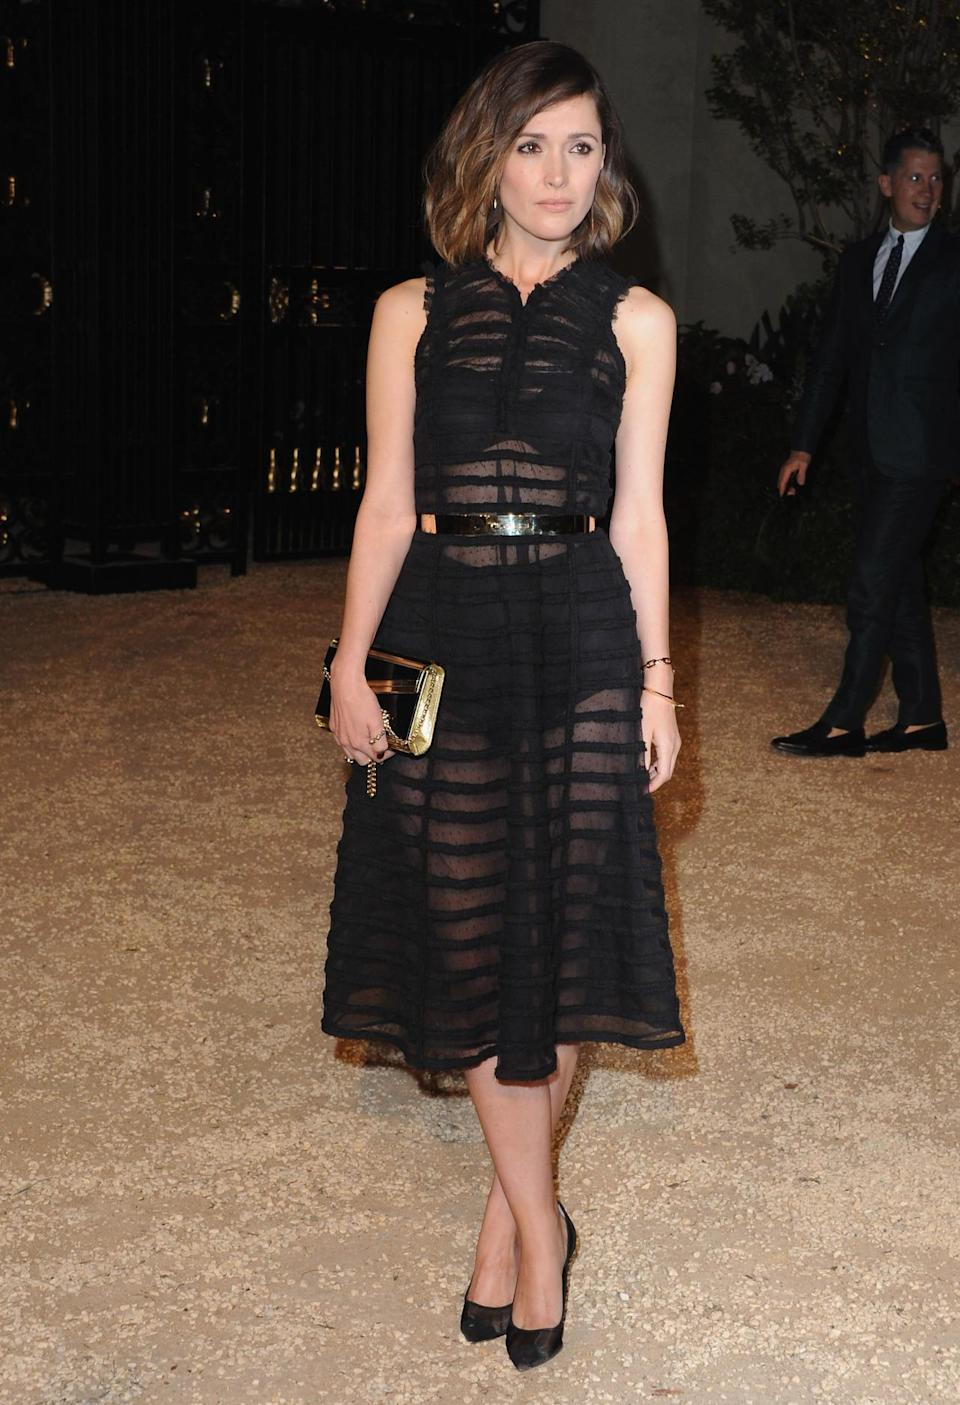 Another star to go sheer, Rose Byrne covered up her grannie panties with a striped midi dress.